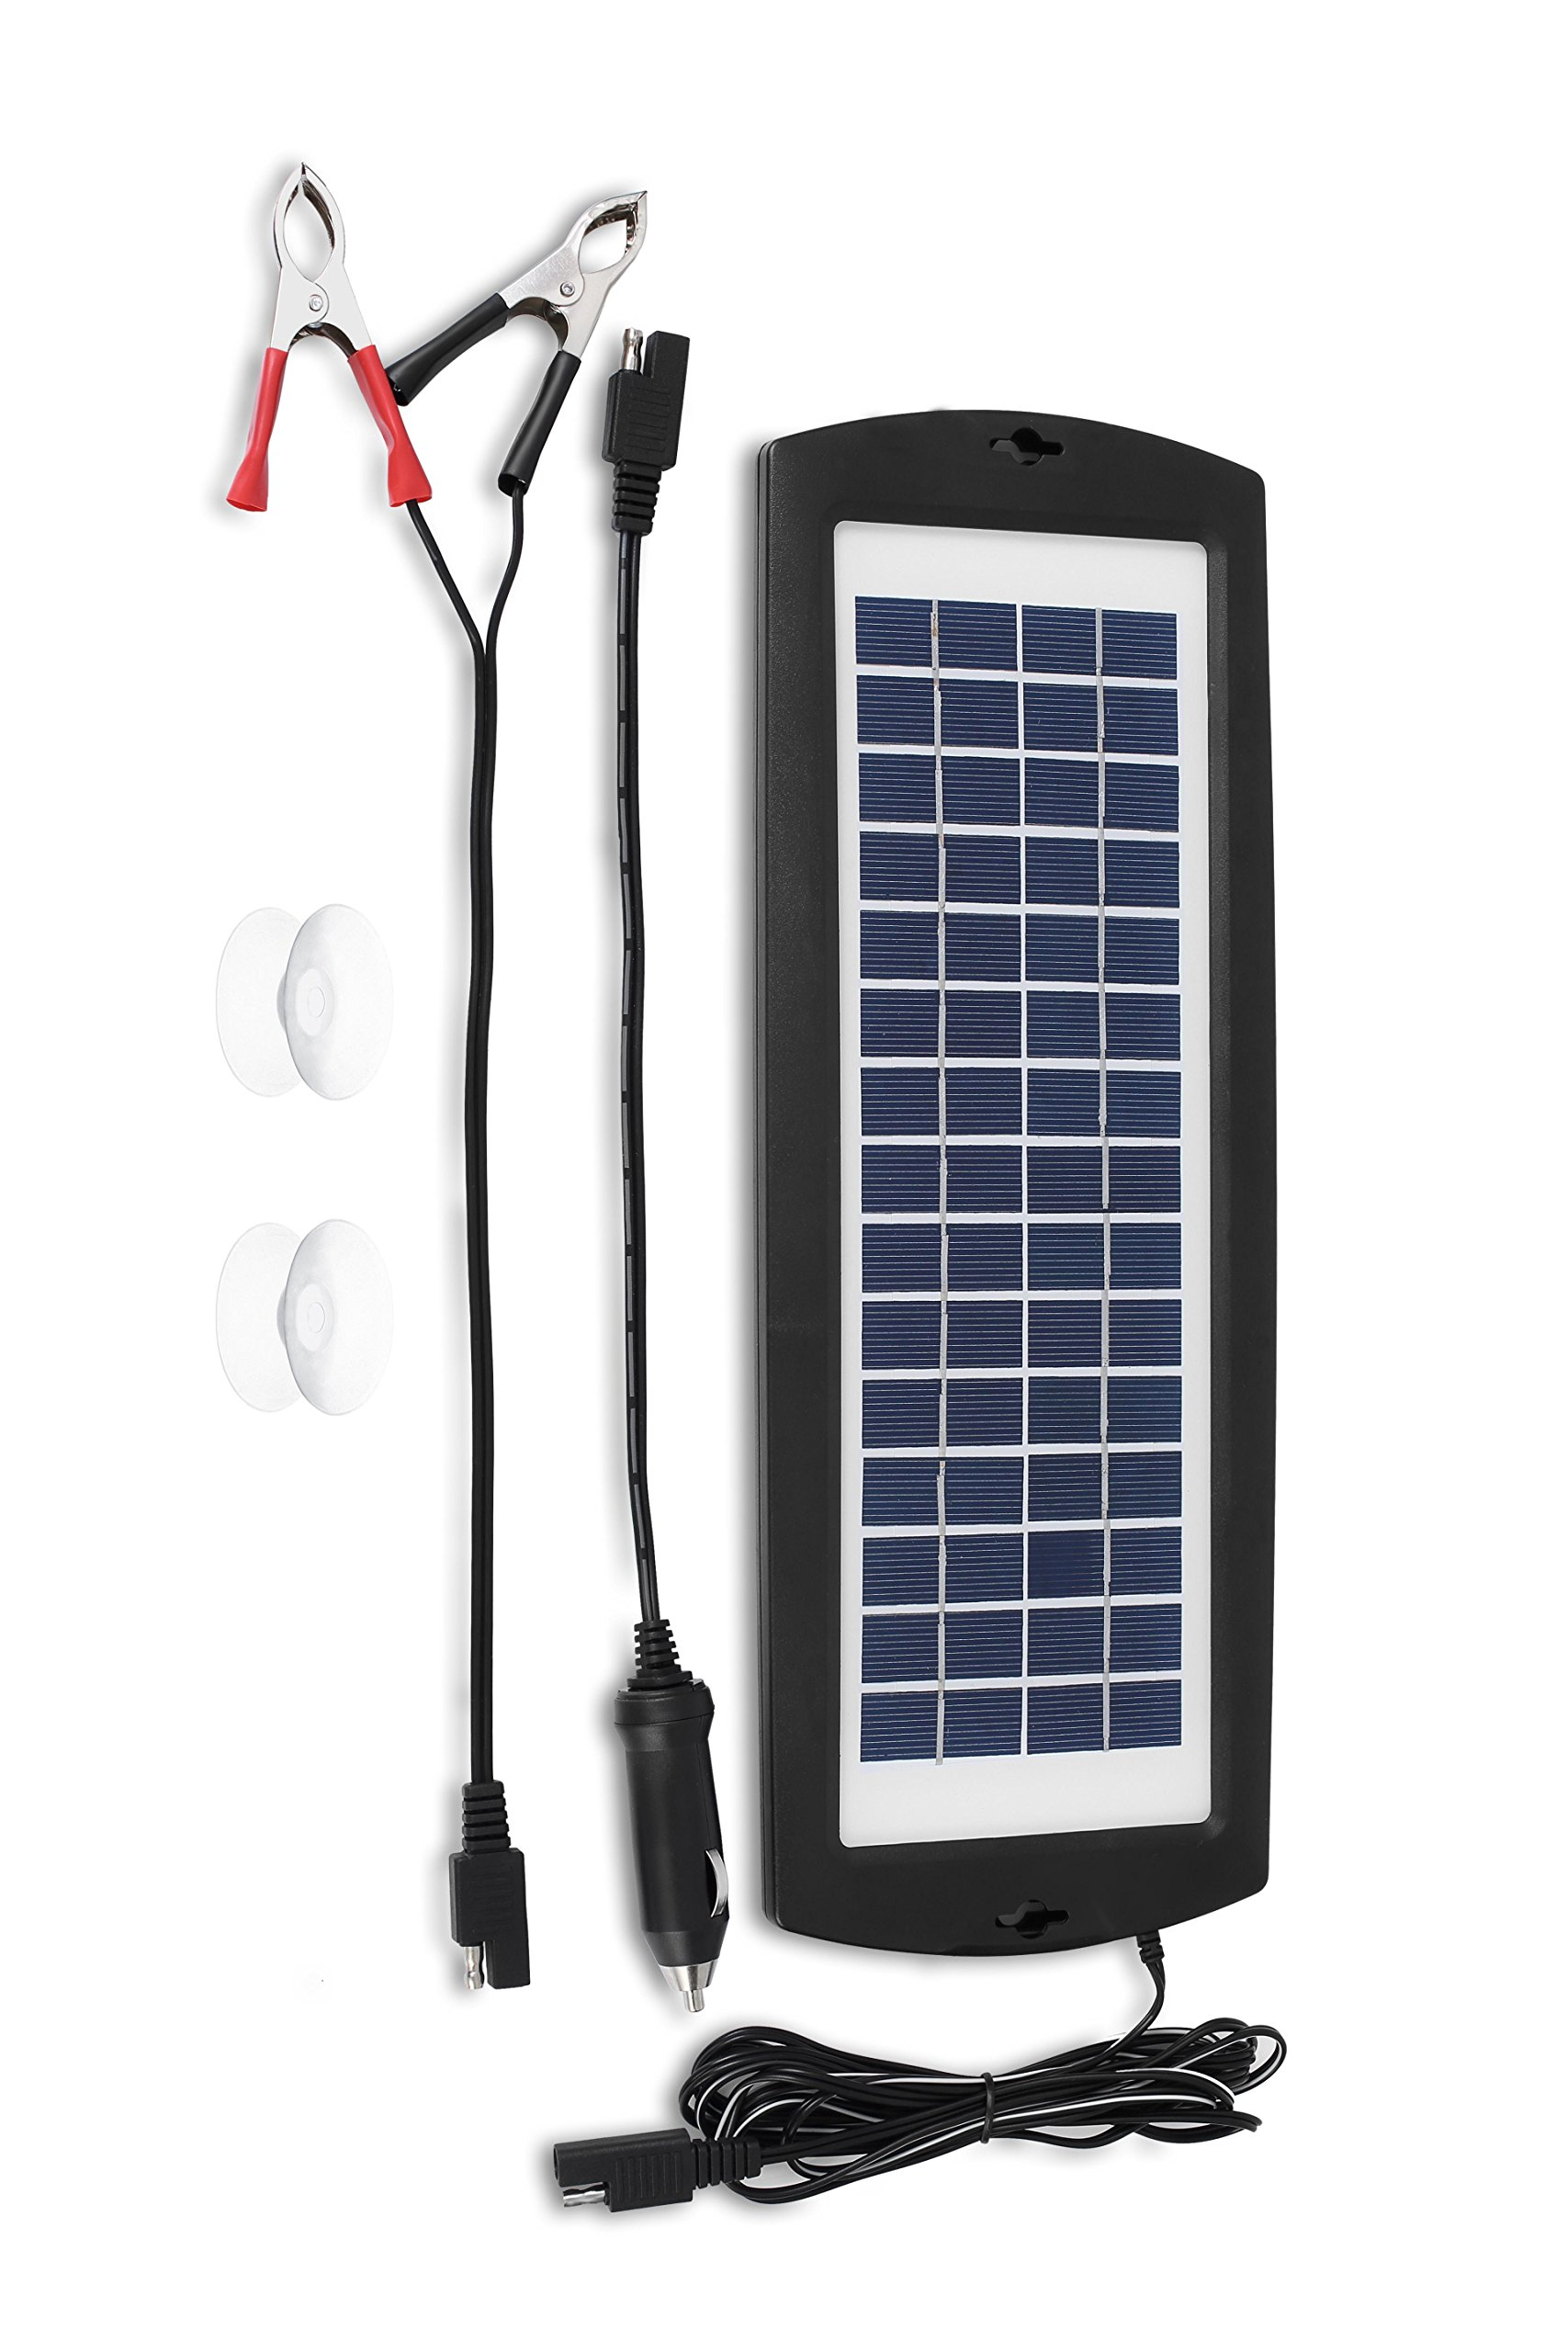 MoPower2U Solar Powered Battery Charger Tender - Light Portable and Weatherproof 12V Trickle Power Panel - Provides backup for Car Truck Motorcycle Camper RV Boat Tractor Mower Batteries by MoPower2U